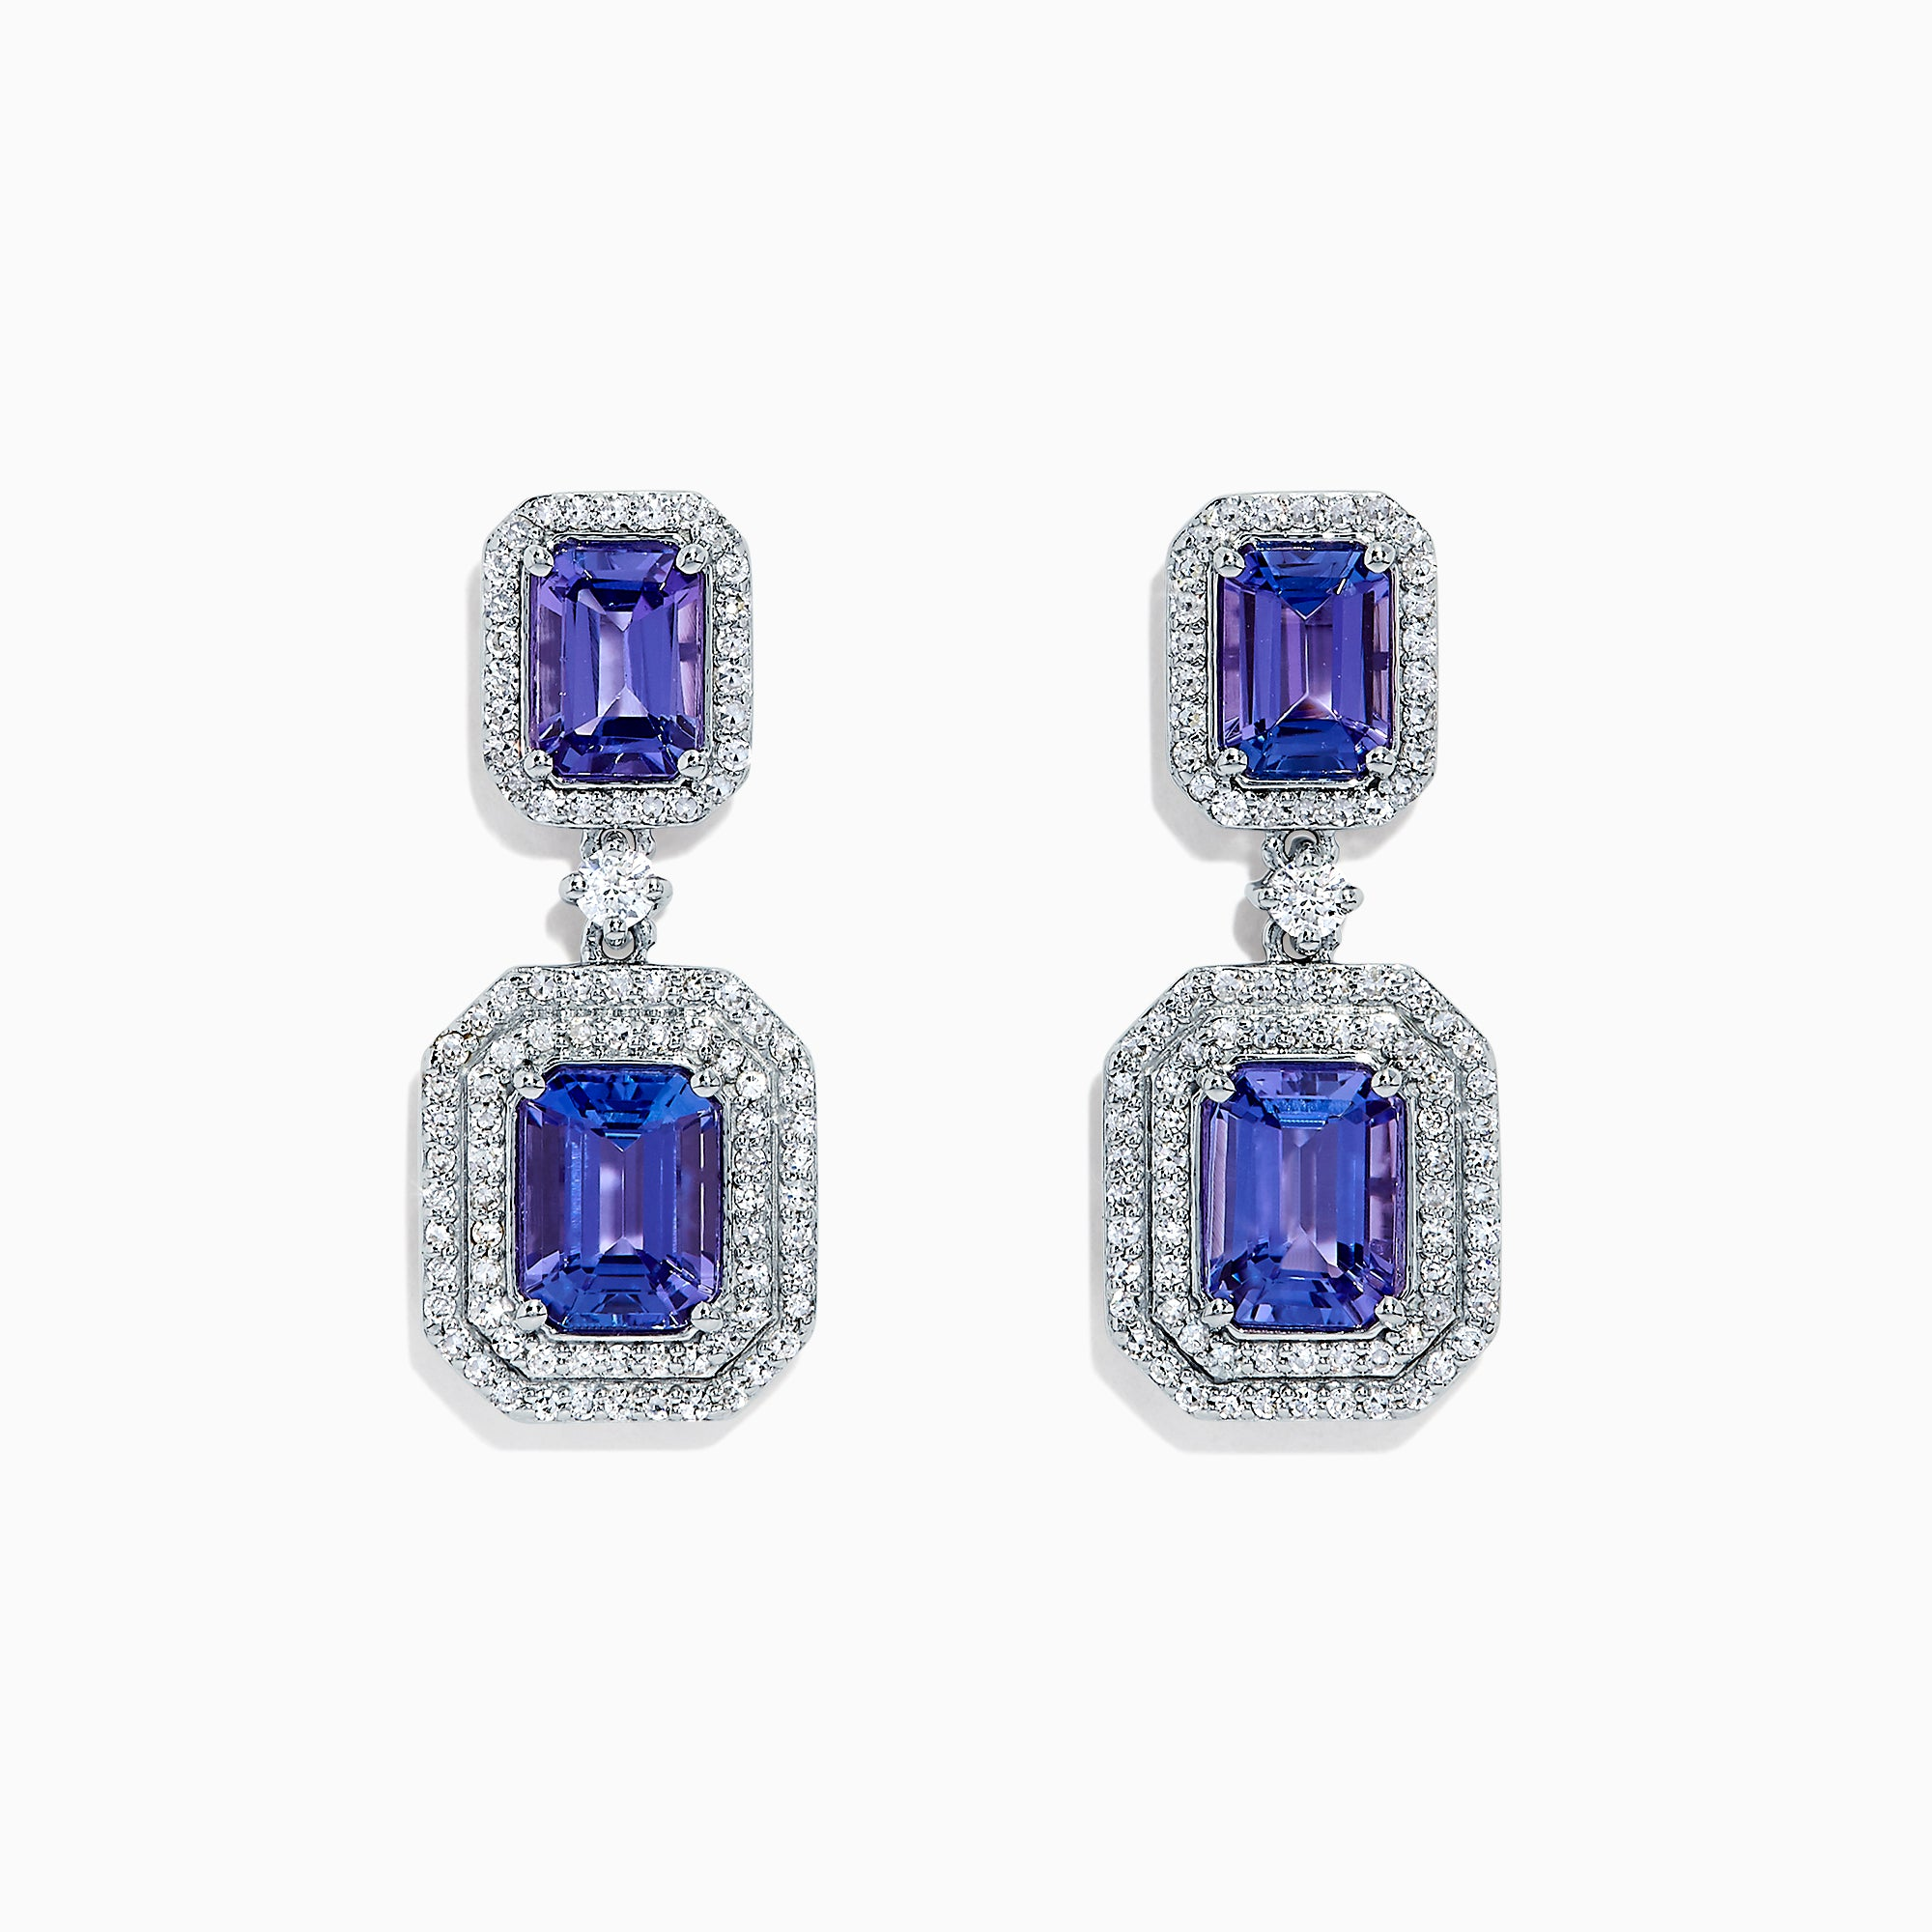 Effy Tanzanite Royale 14K White Gold Tanzanite & Diamond Earrings, 5.24 TCW